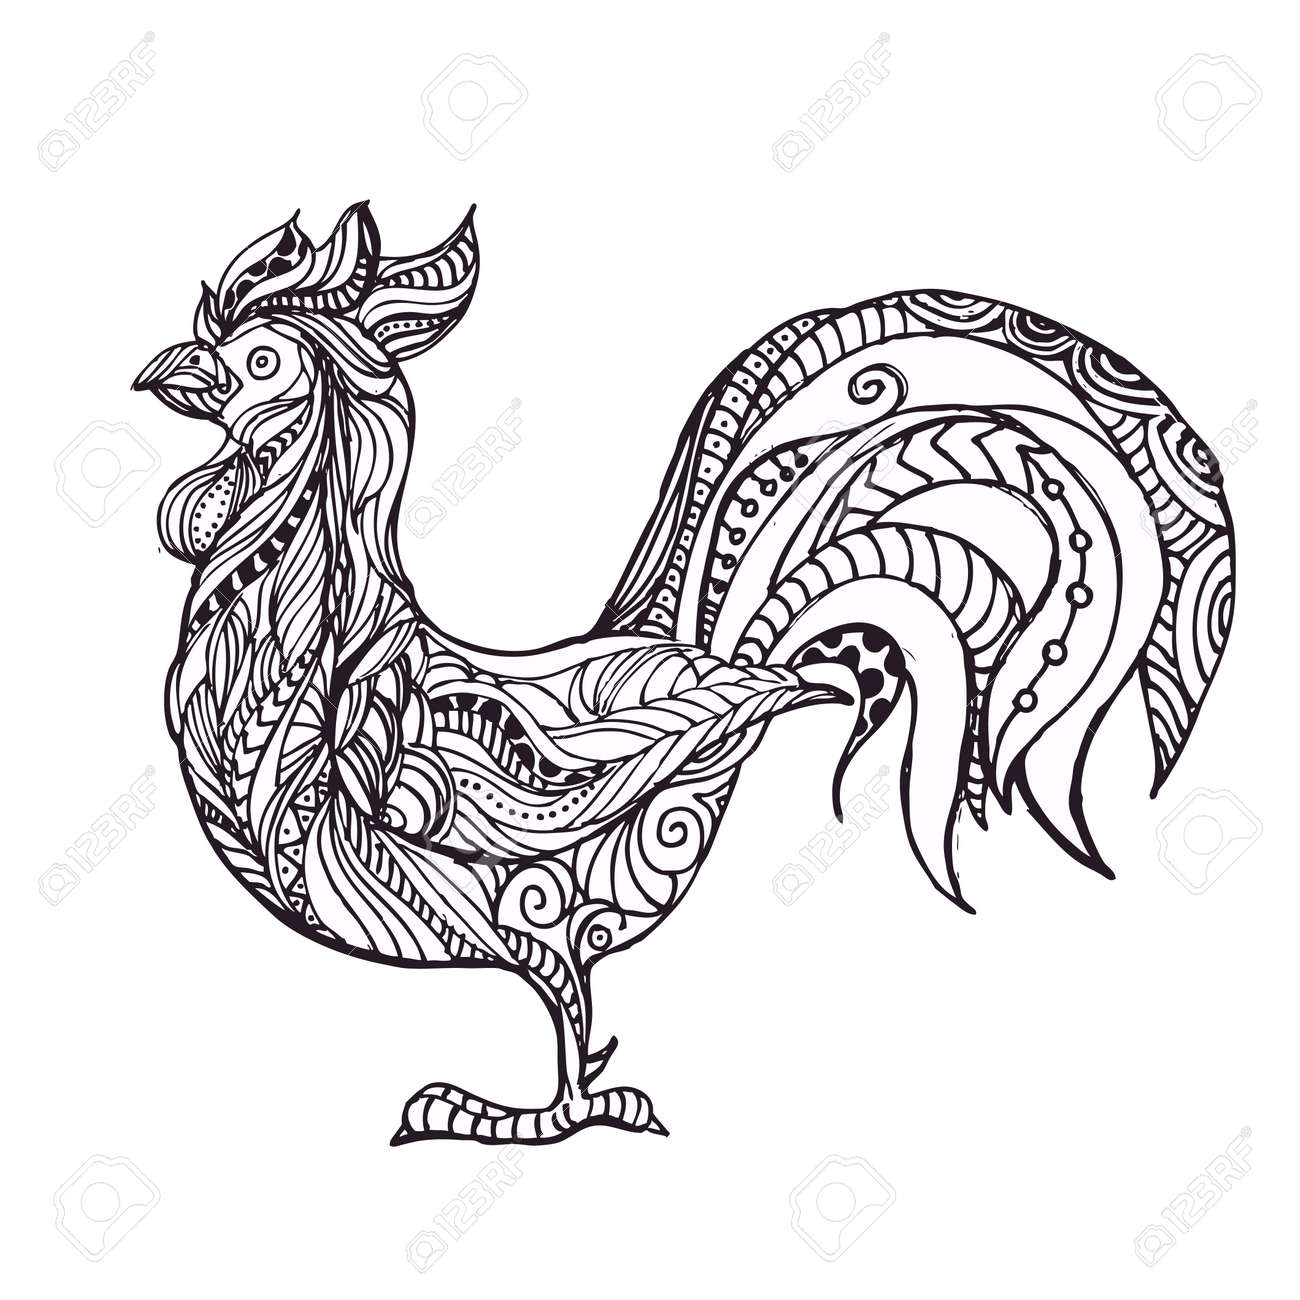 hand drawn black and white doodle birds rooster ethnic patterned